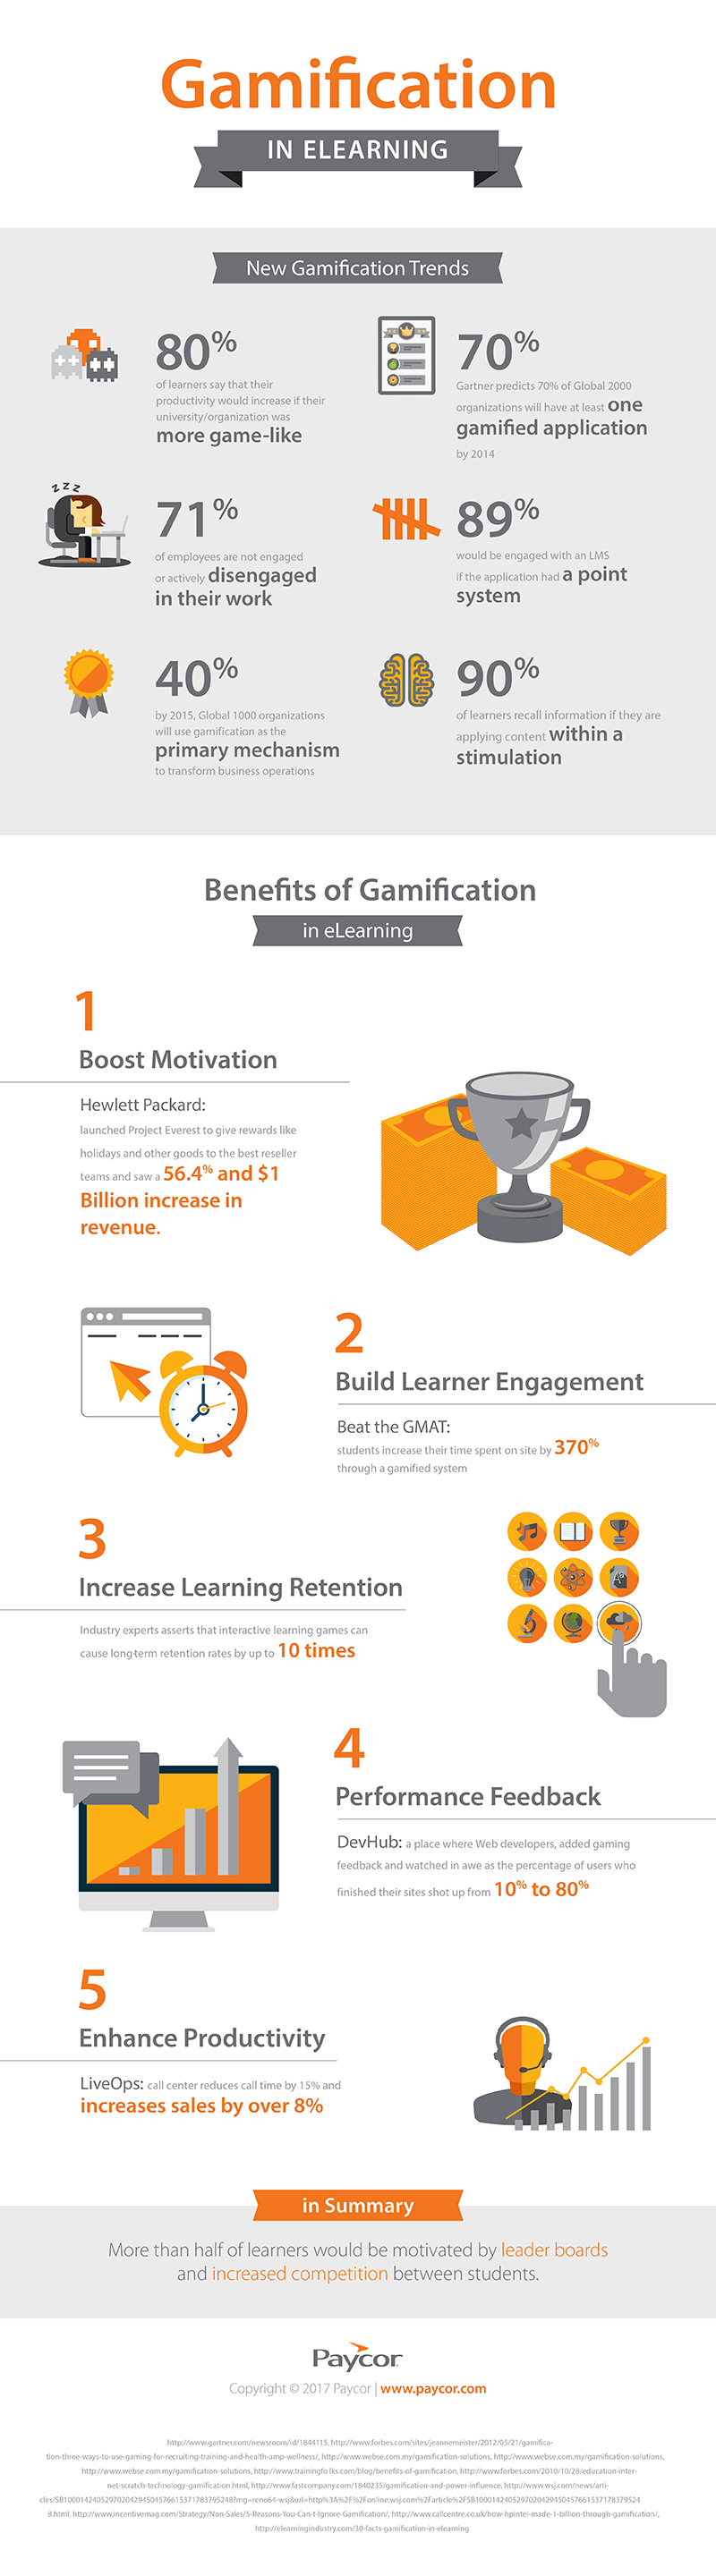 Gamification Trends in eLearning Infographic